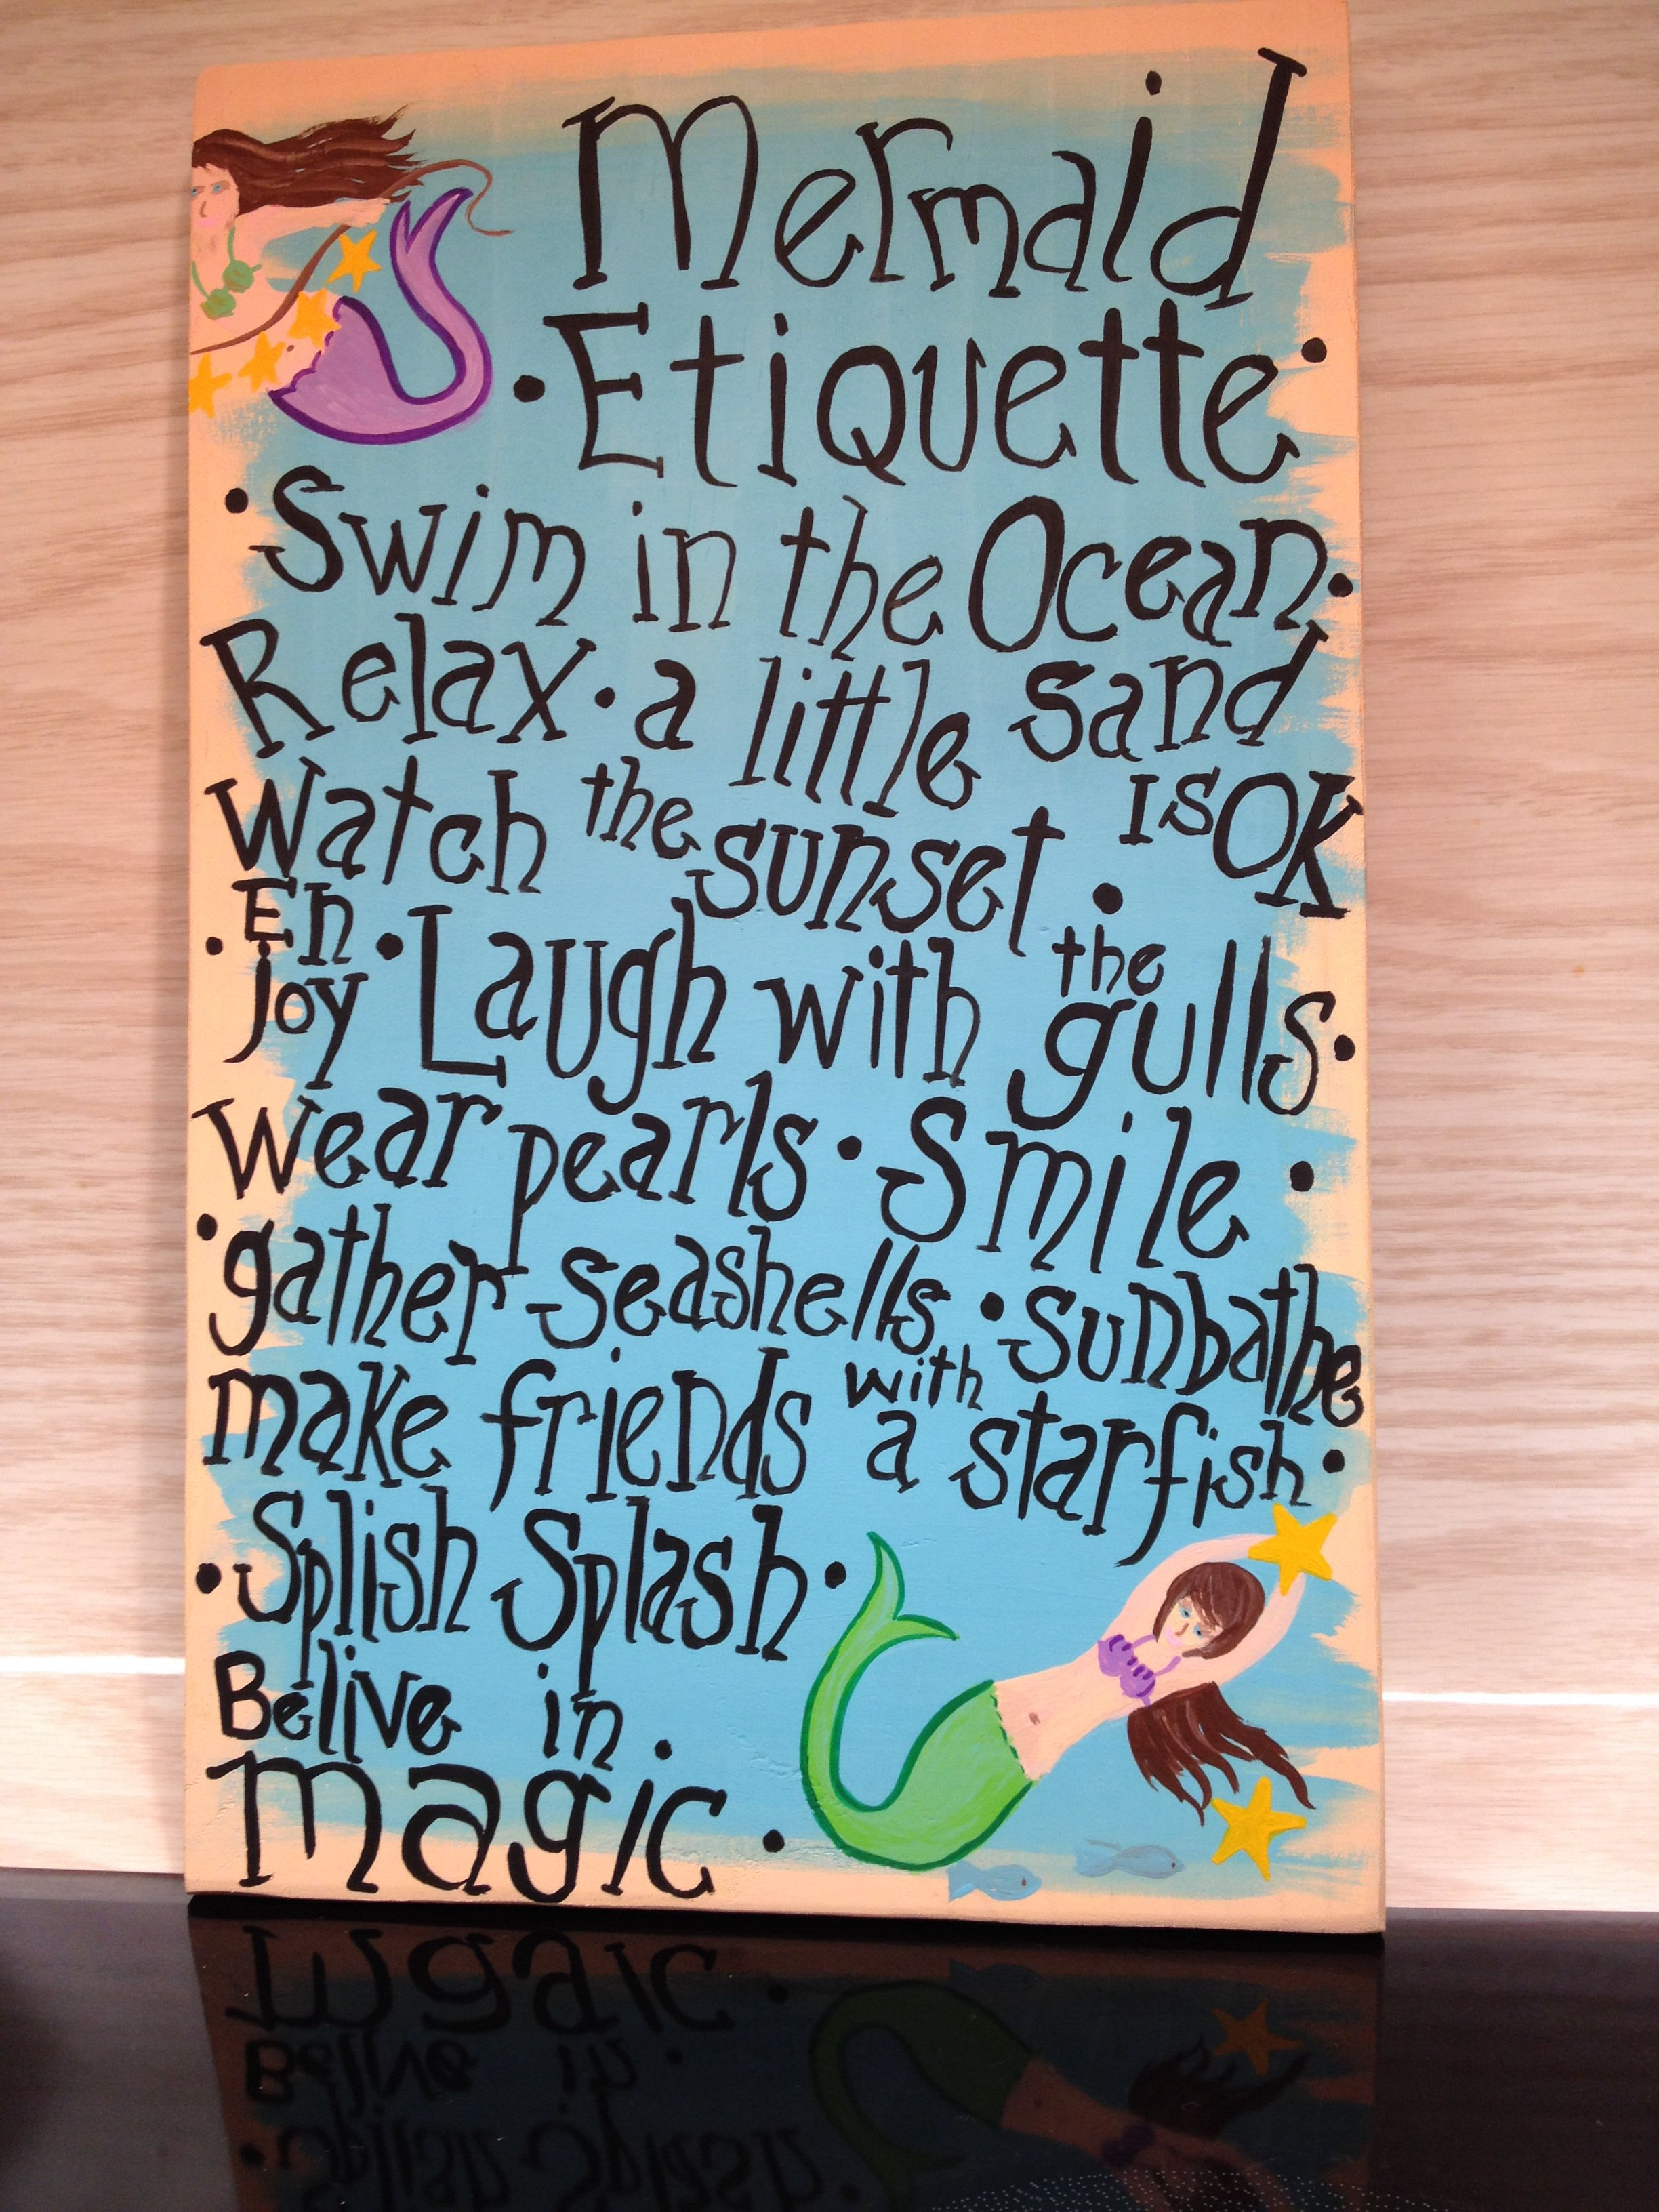 Hand painted wooden sign mermaid etiquette for sale 15